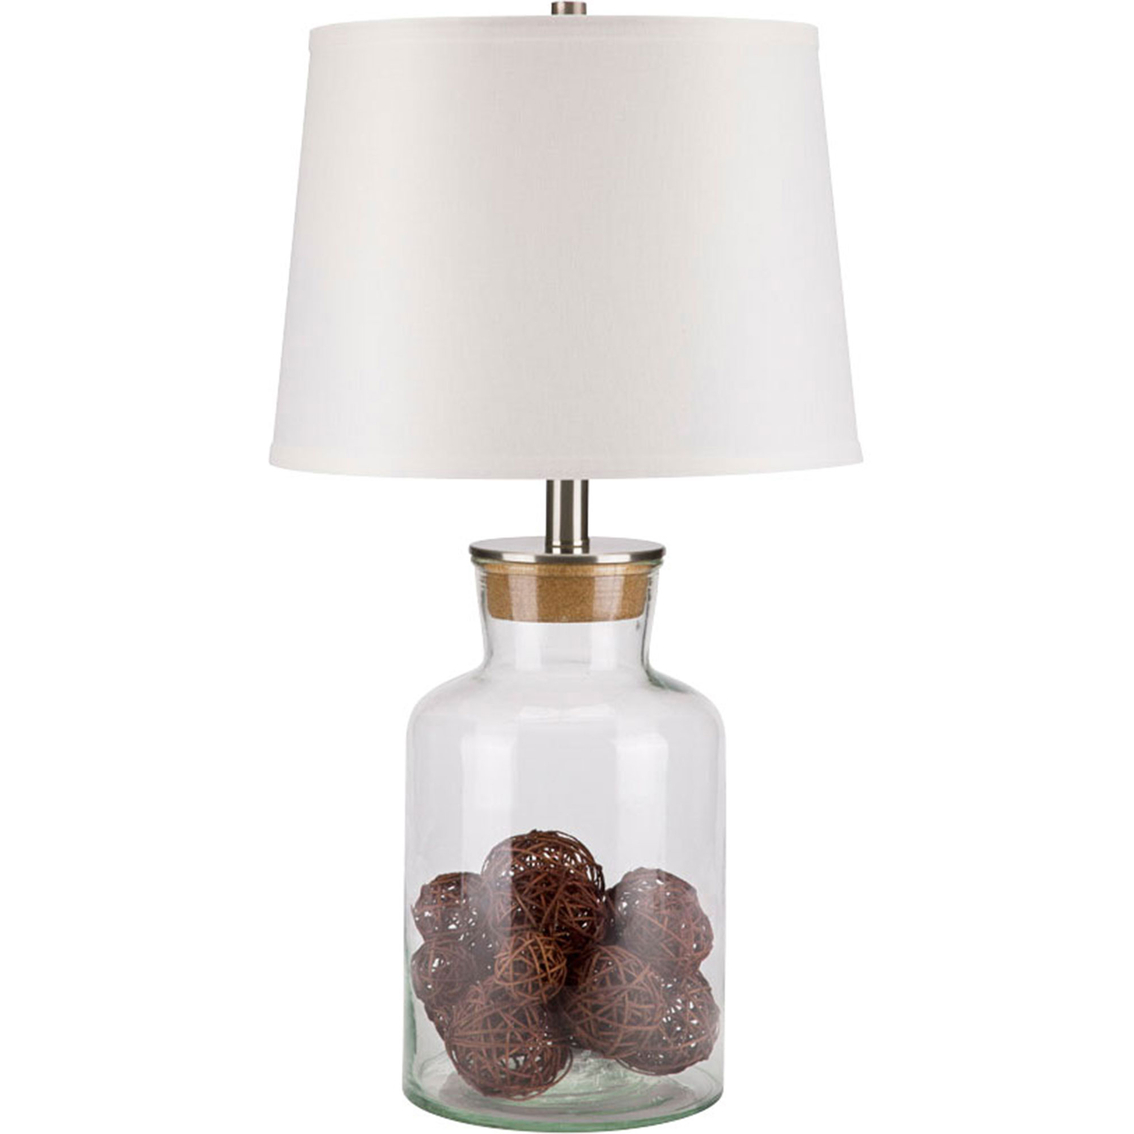 Simply Perfect Re Fillable Glass Table Lamp With Cork Top Table